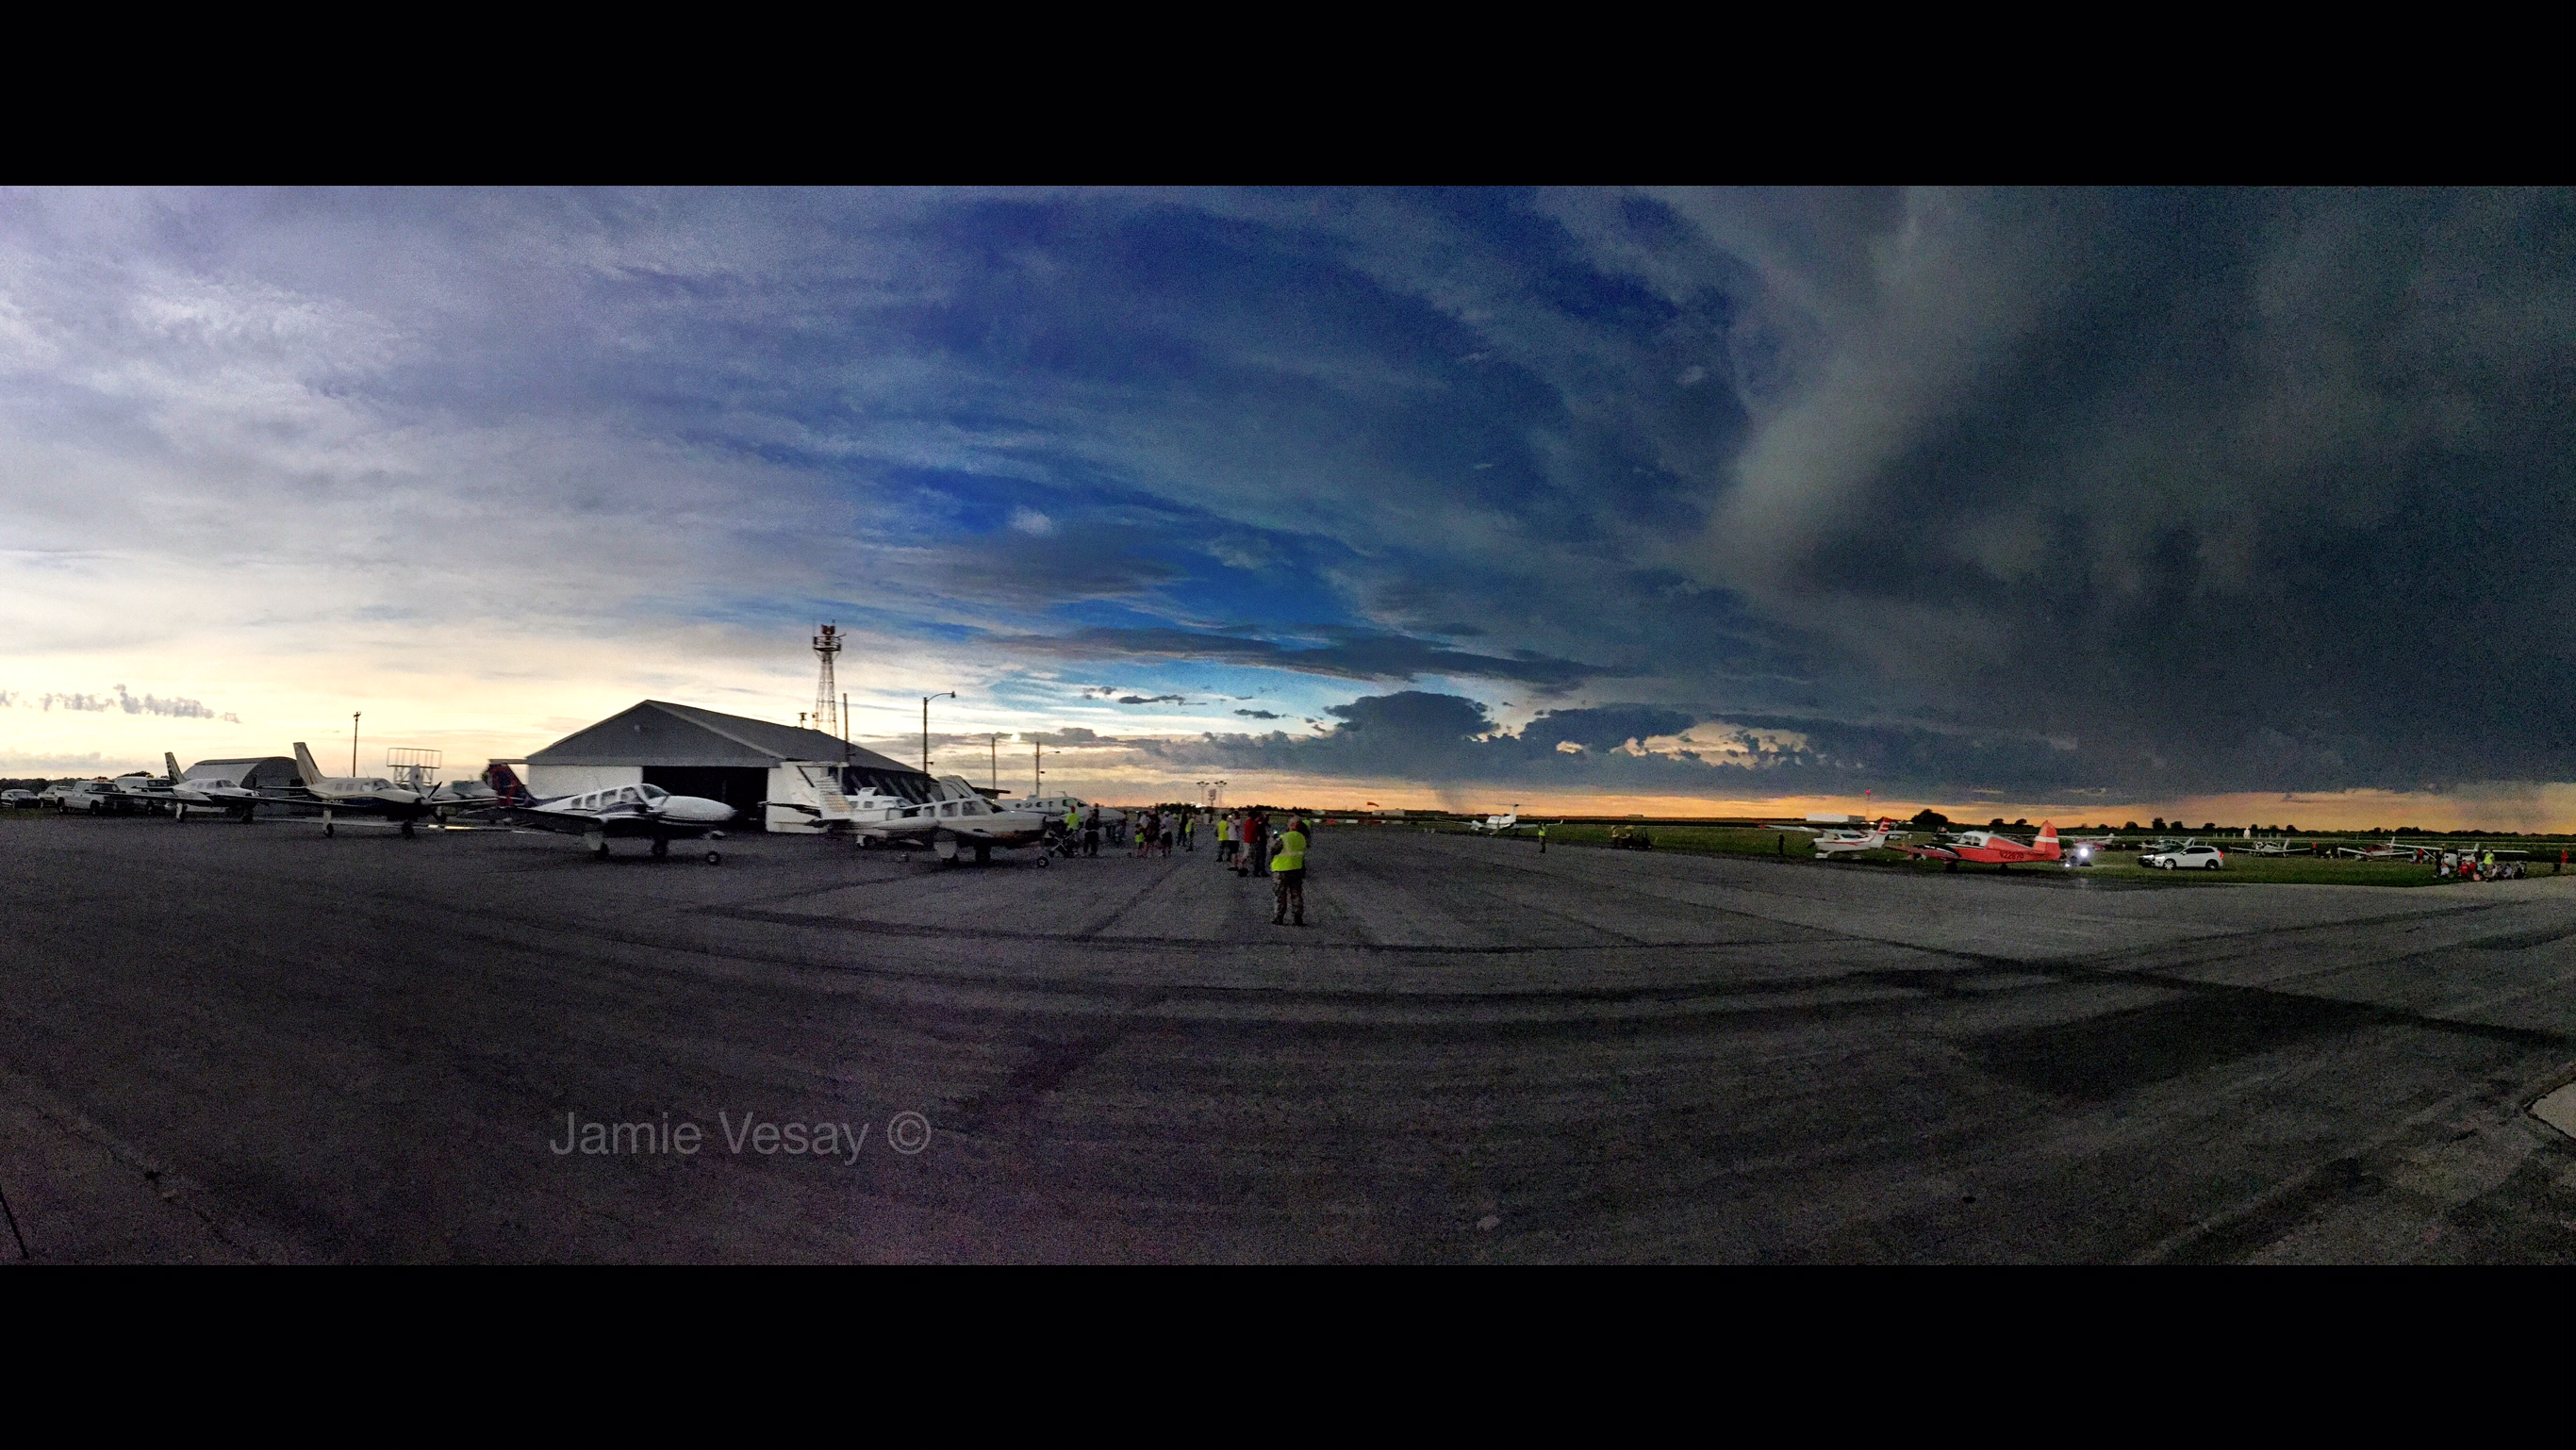 The only time you'll see a 360 sunset. Jamie Vesay